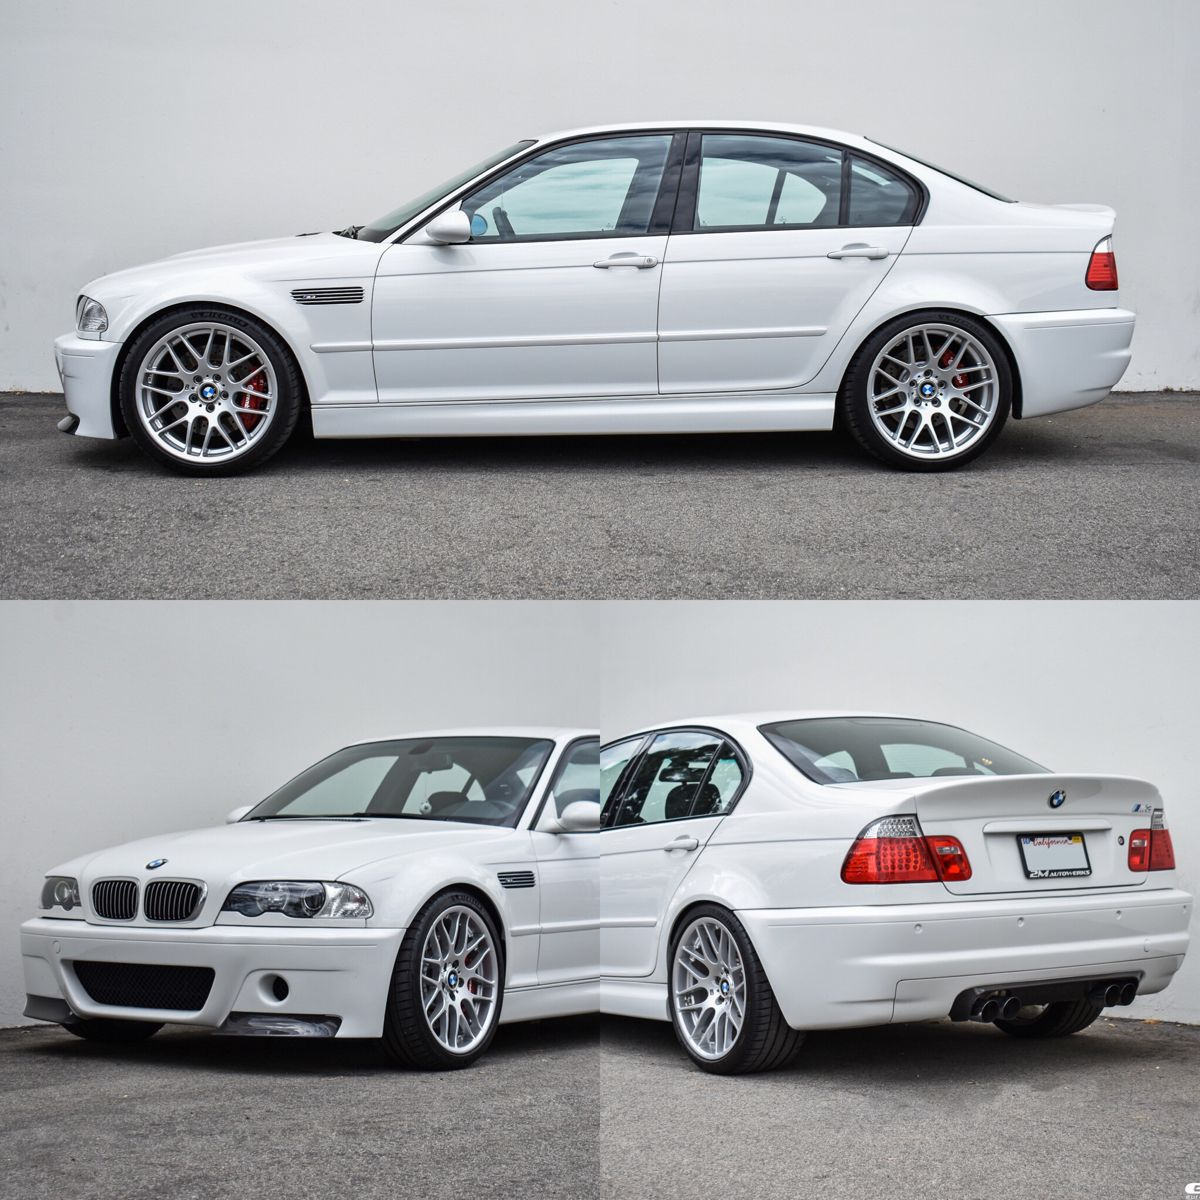 #BMW #E46 #M3 #Sedan #MPower #MPerformance #SheerDrivingPleasure #Badass #LegendDesign #ProvocativeE